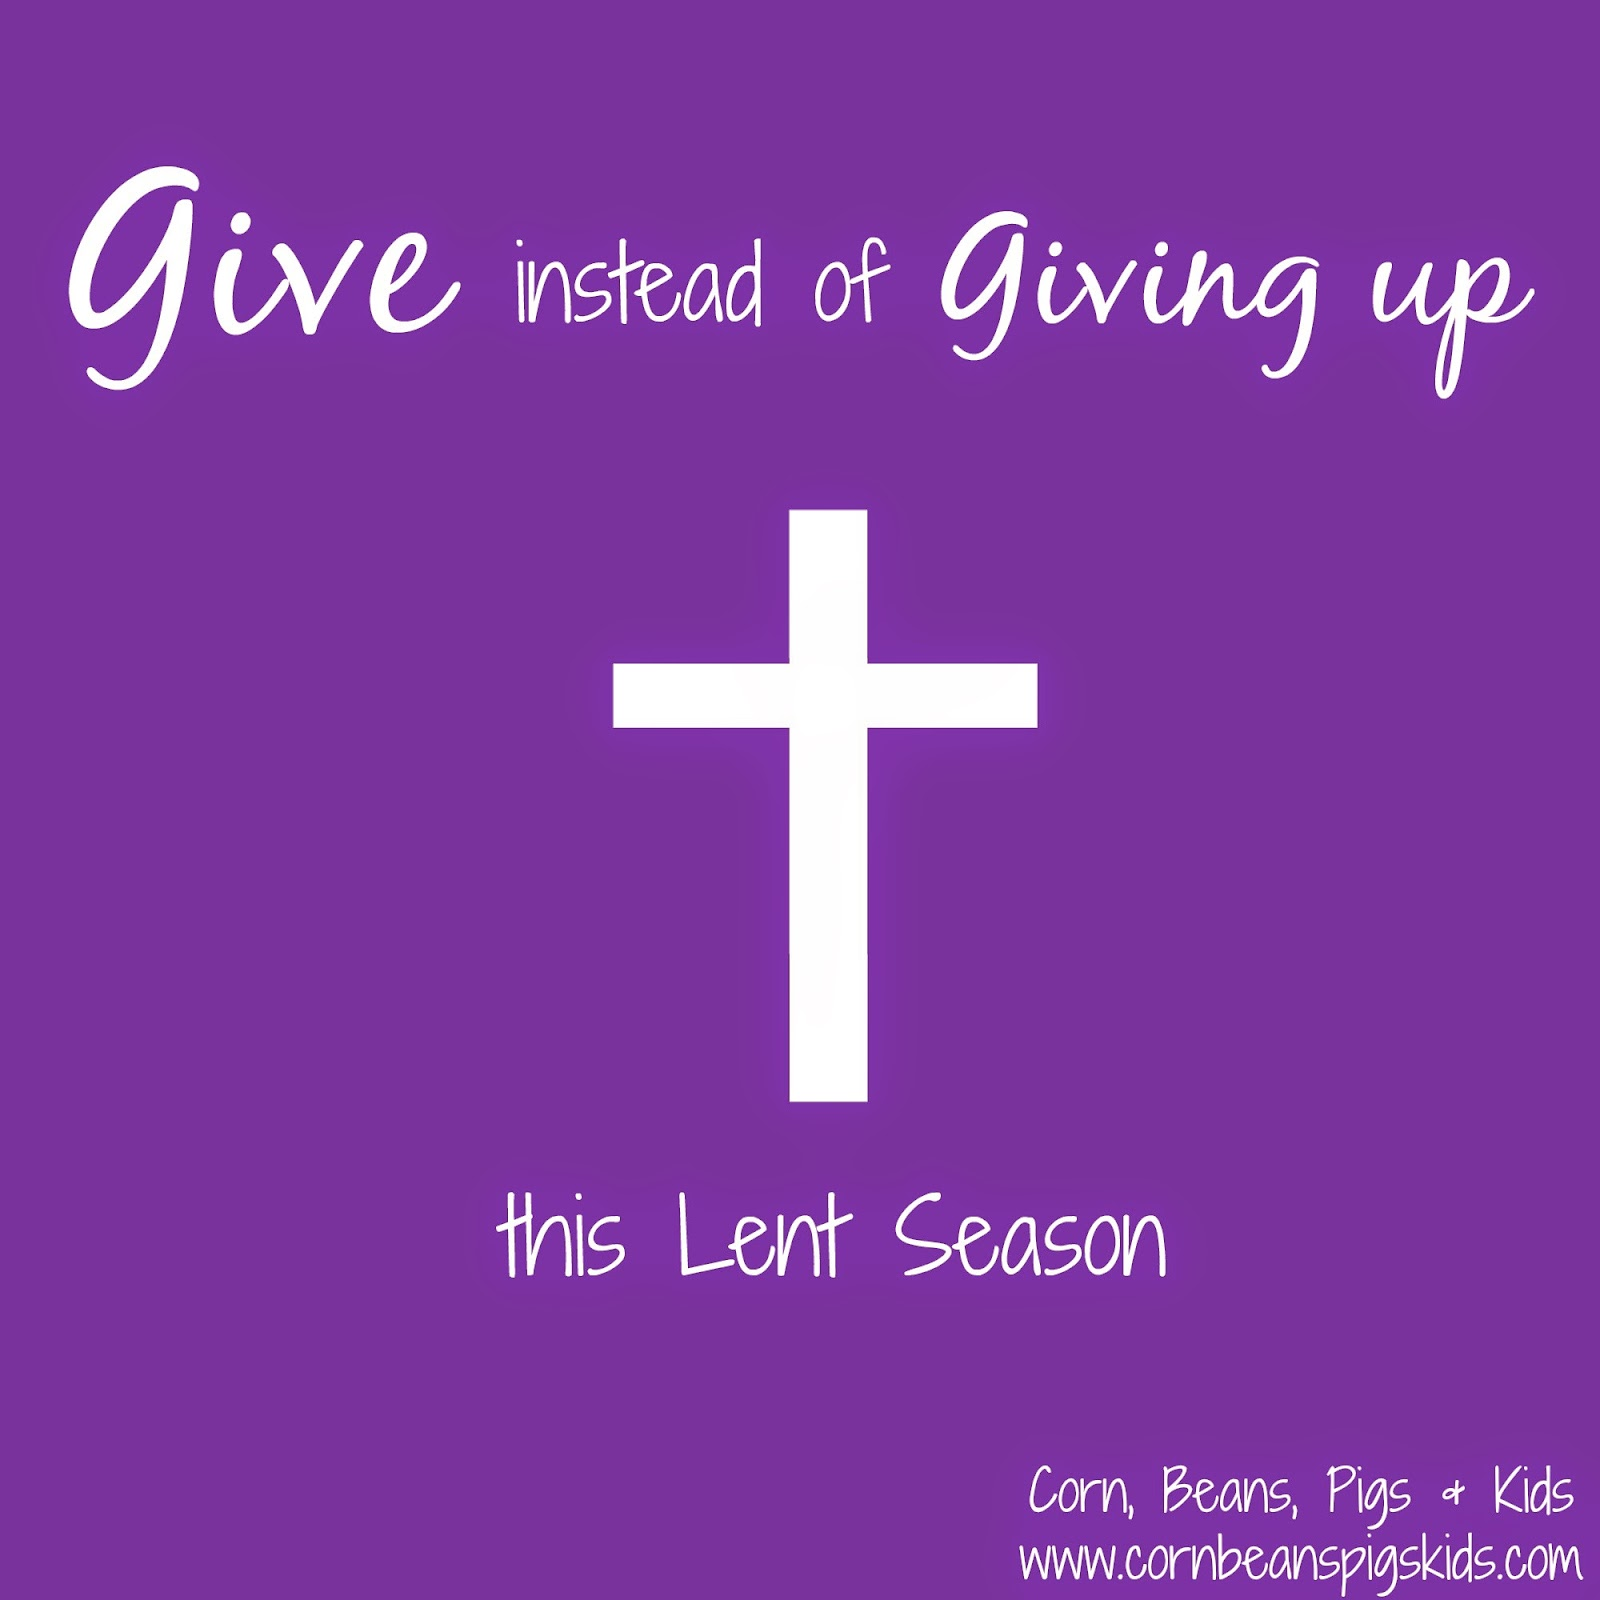 Corn, Beans, Pigs and Kids: Give instead of Giving Up this Lent